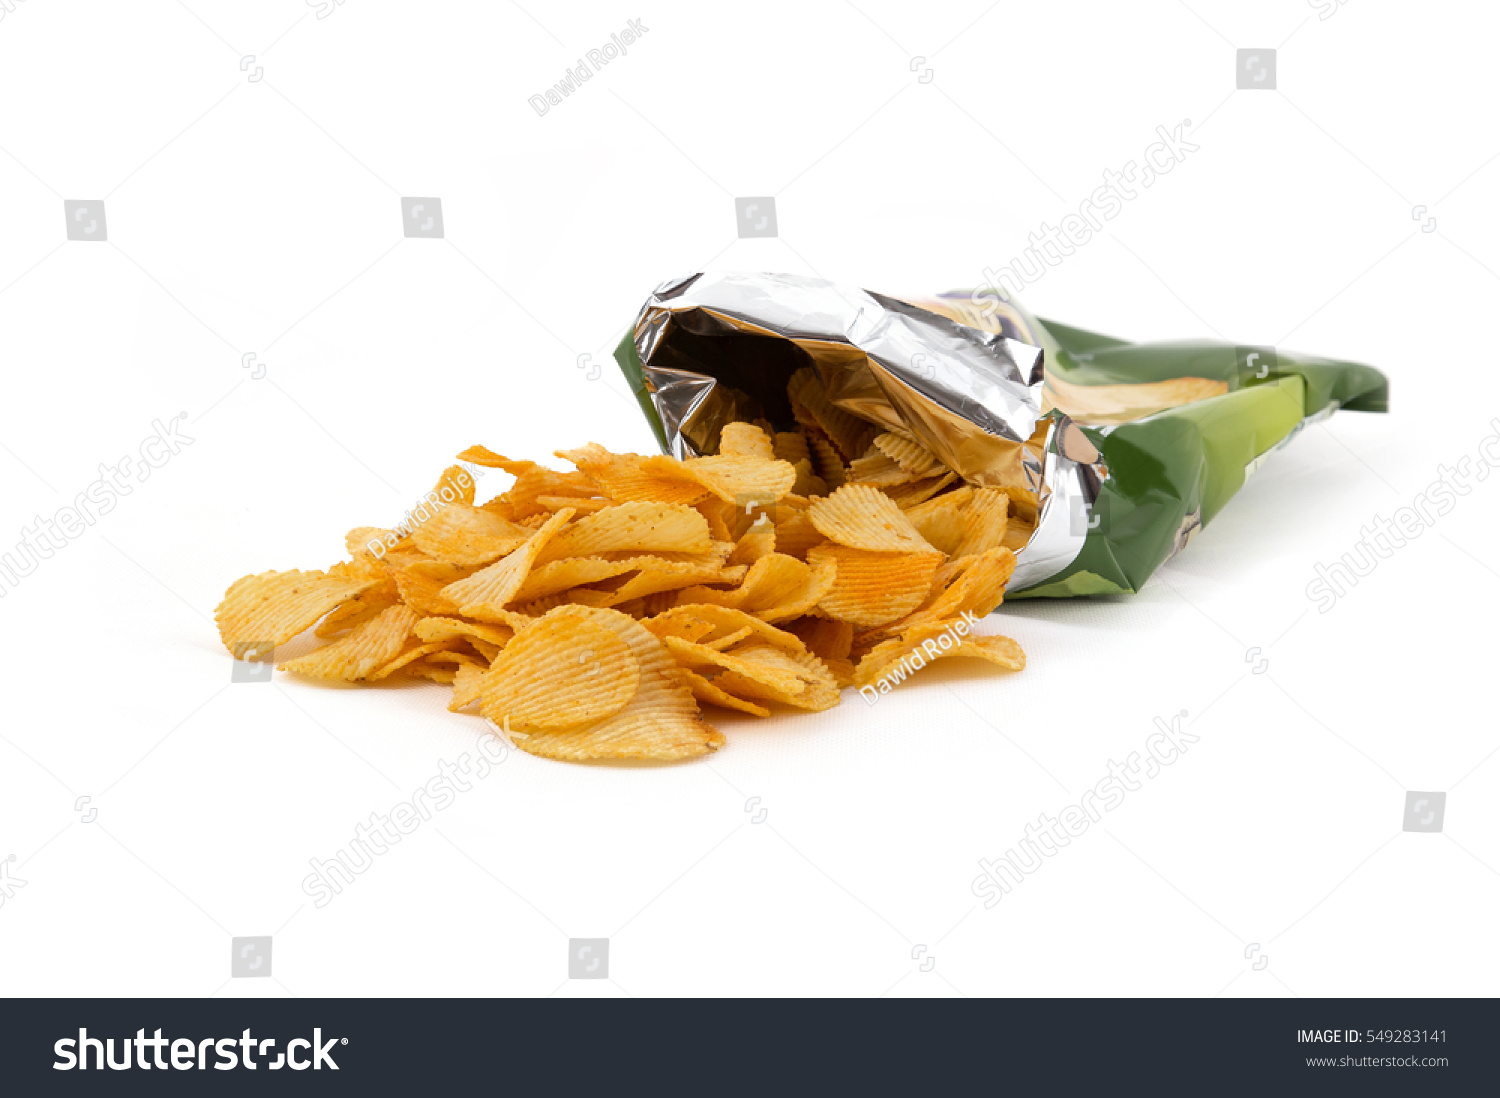 Potato crisp packet opened with crisps spilling out #549283141